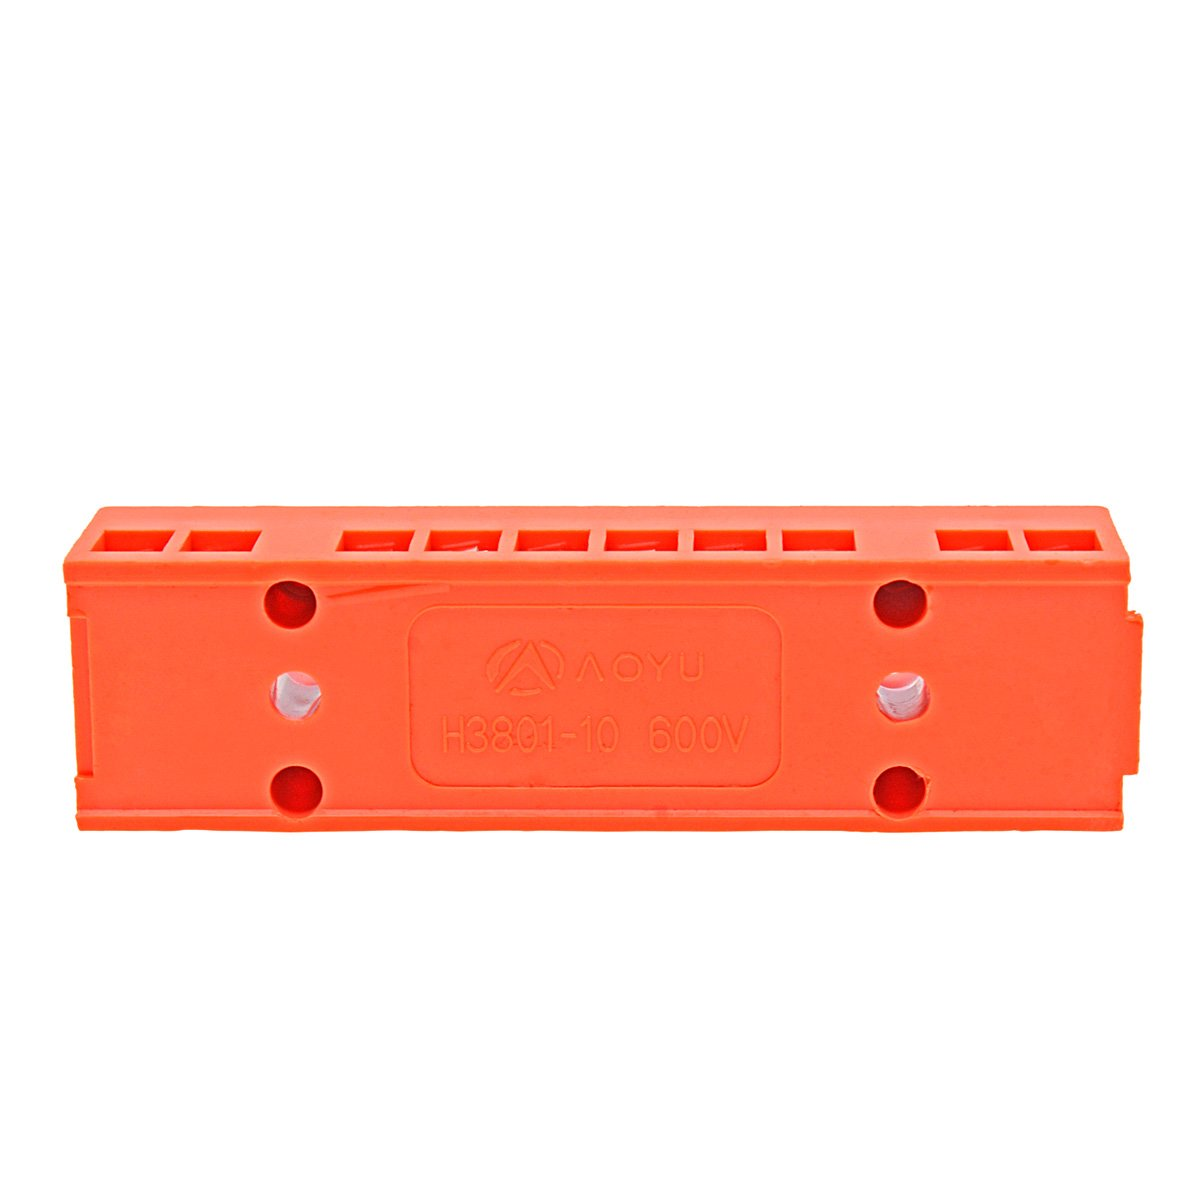 8 Positions Screw Terminal,6Pcs 600V 36A Double Row Electric Barrier Strip Block ABS Connector